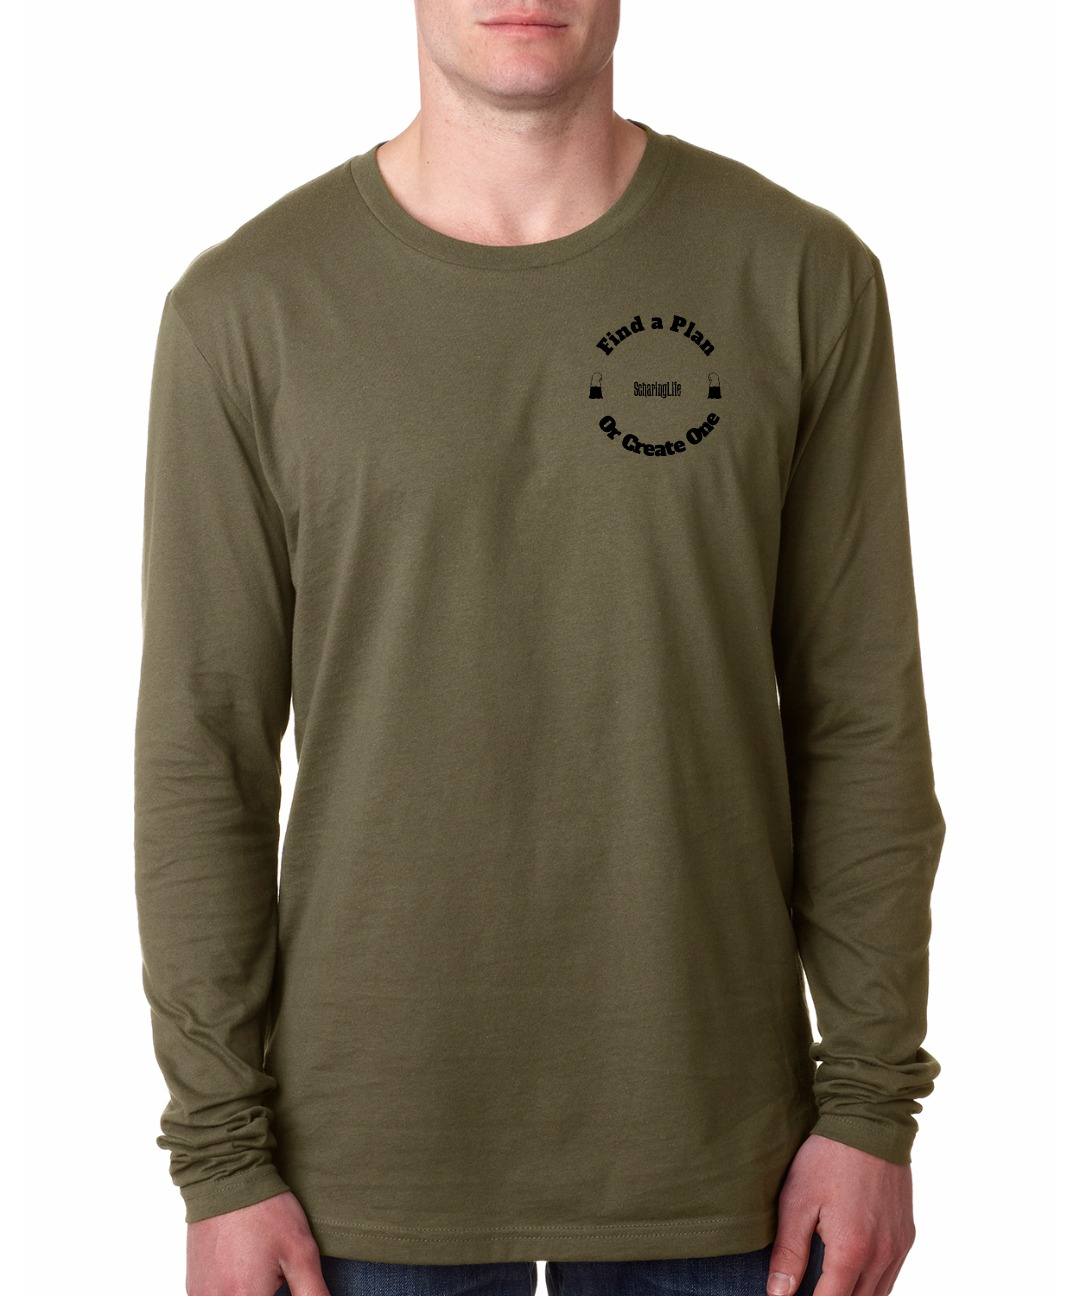 front Find plan military green long